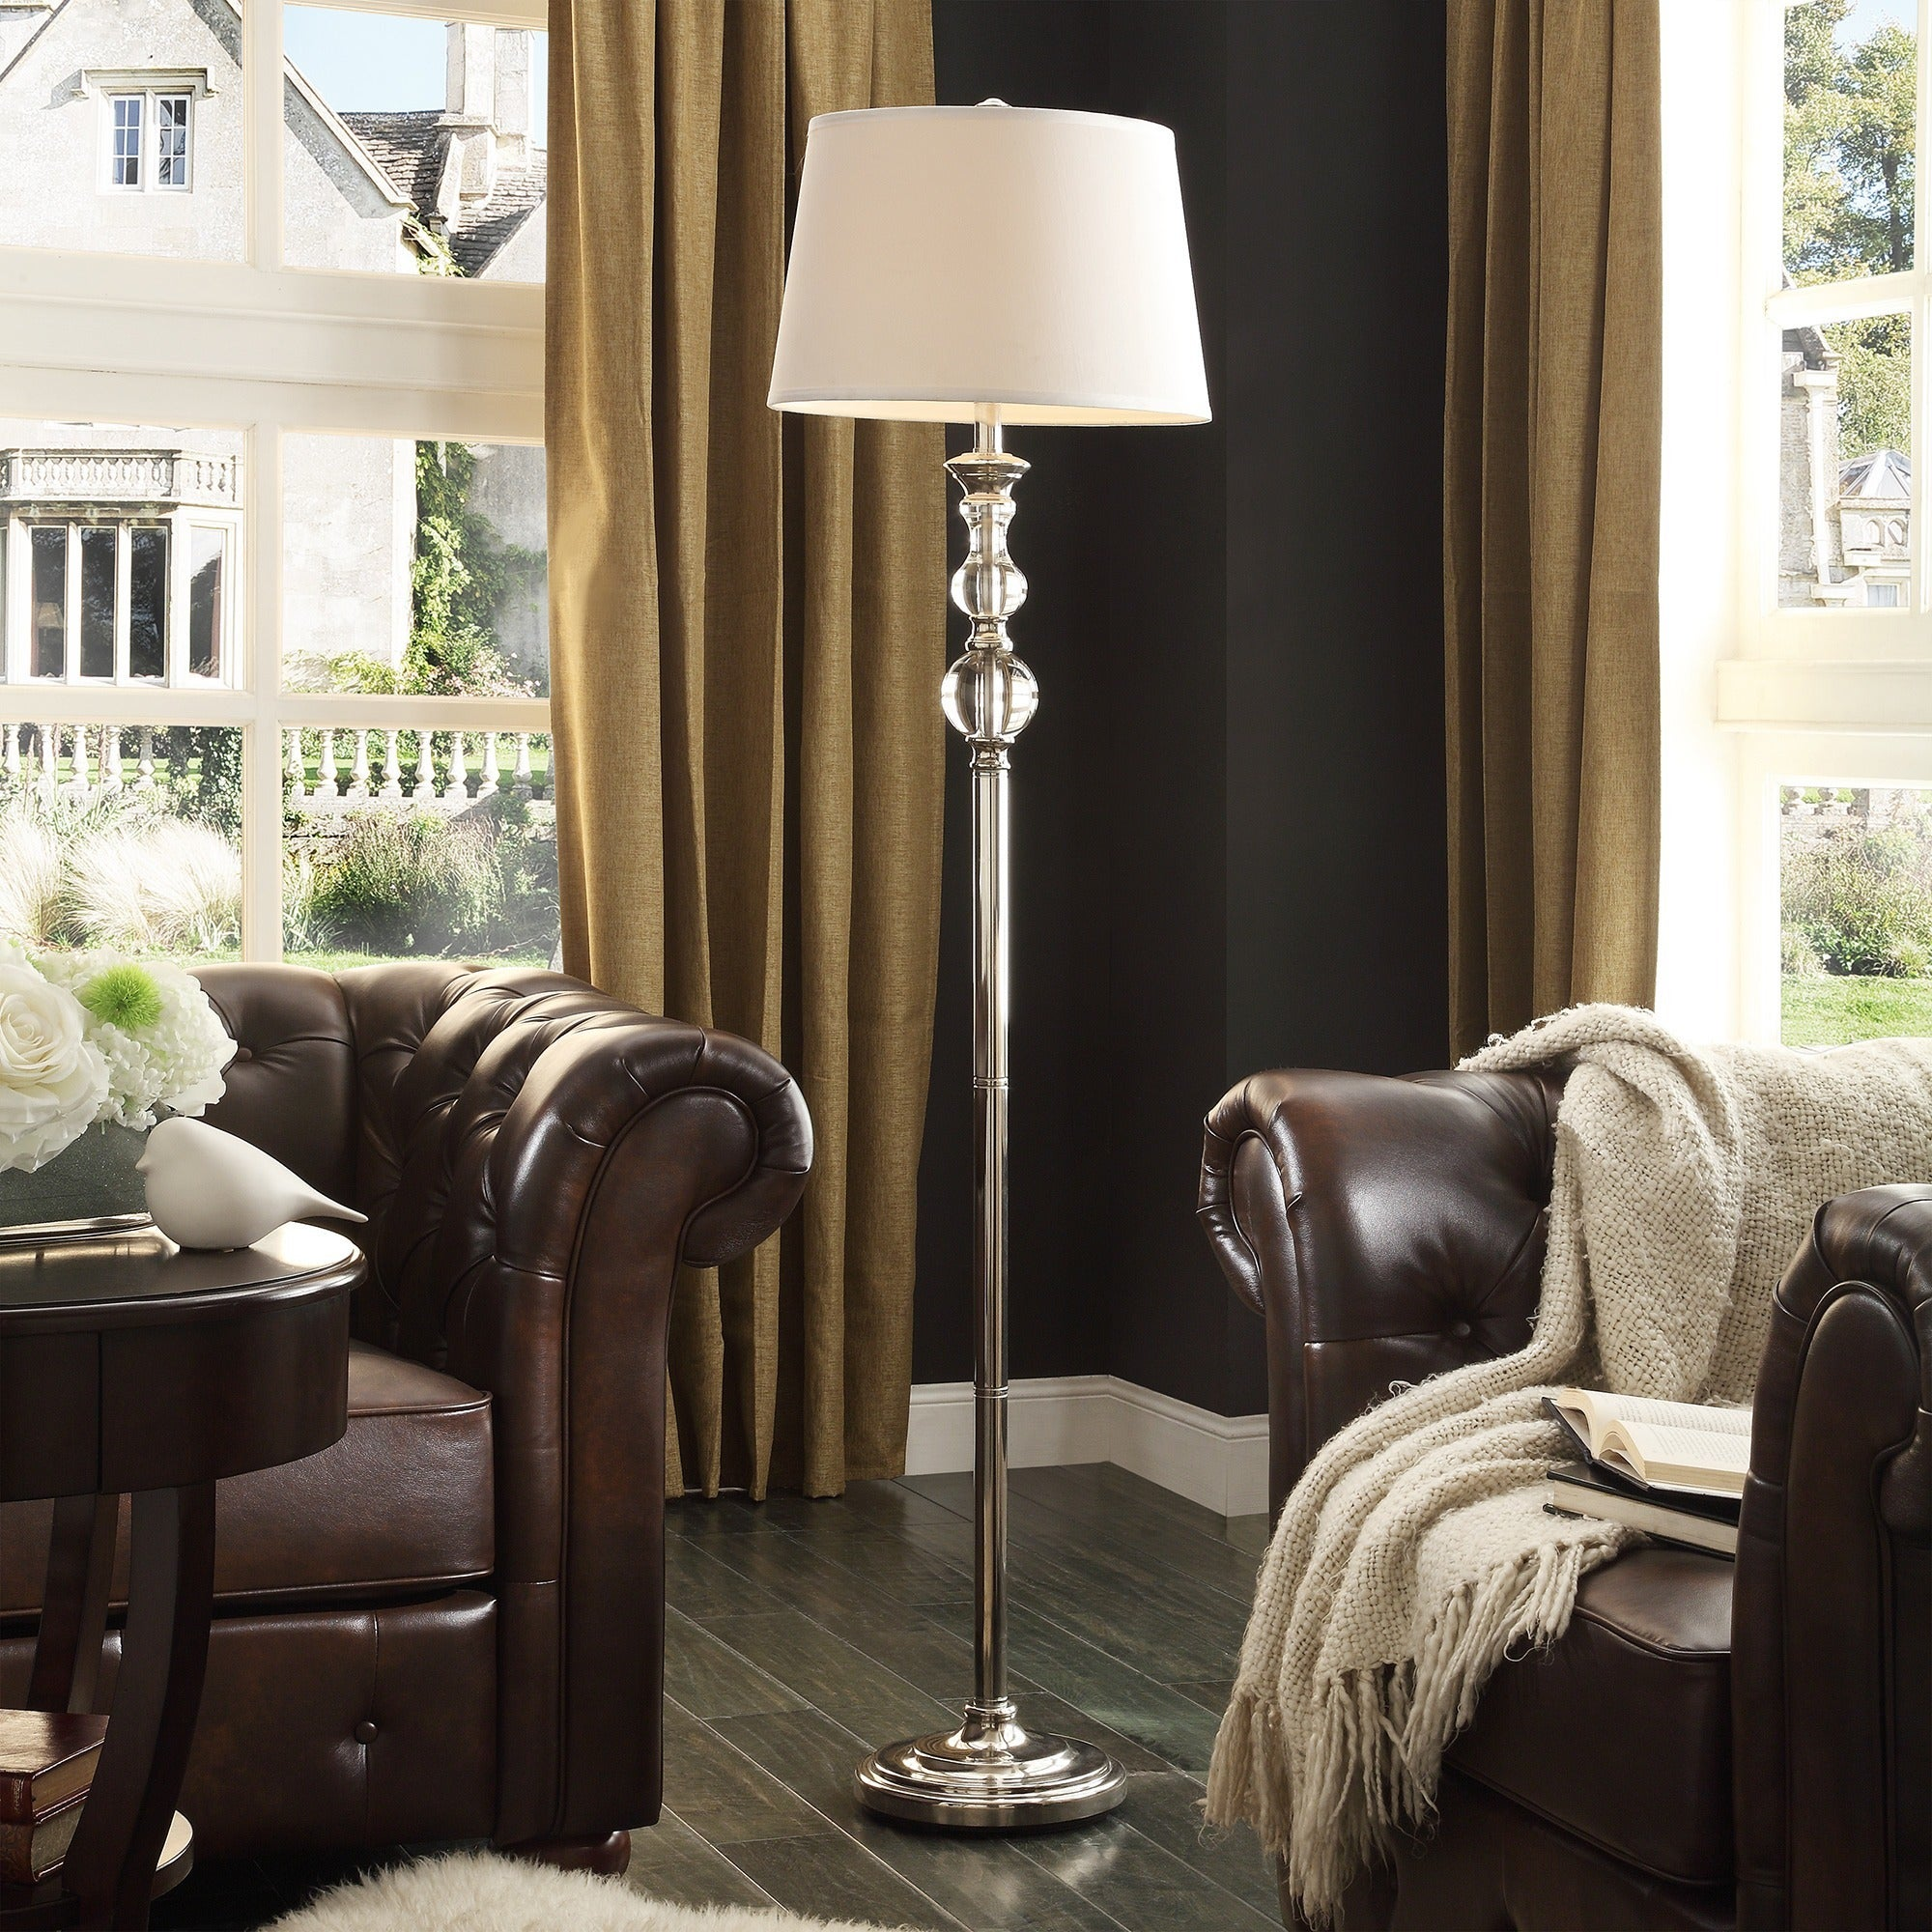 Quinn Satin Nickel Crystal 1-light Accent Floor Lamp by iNSPIRE Q Bold -  Free Shipping Today - Overstock.com - 16984252